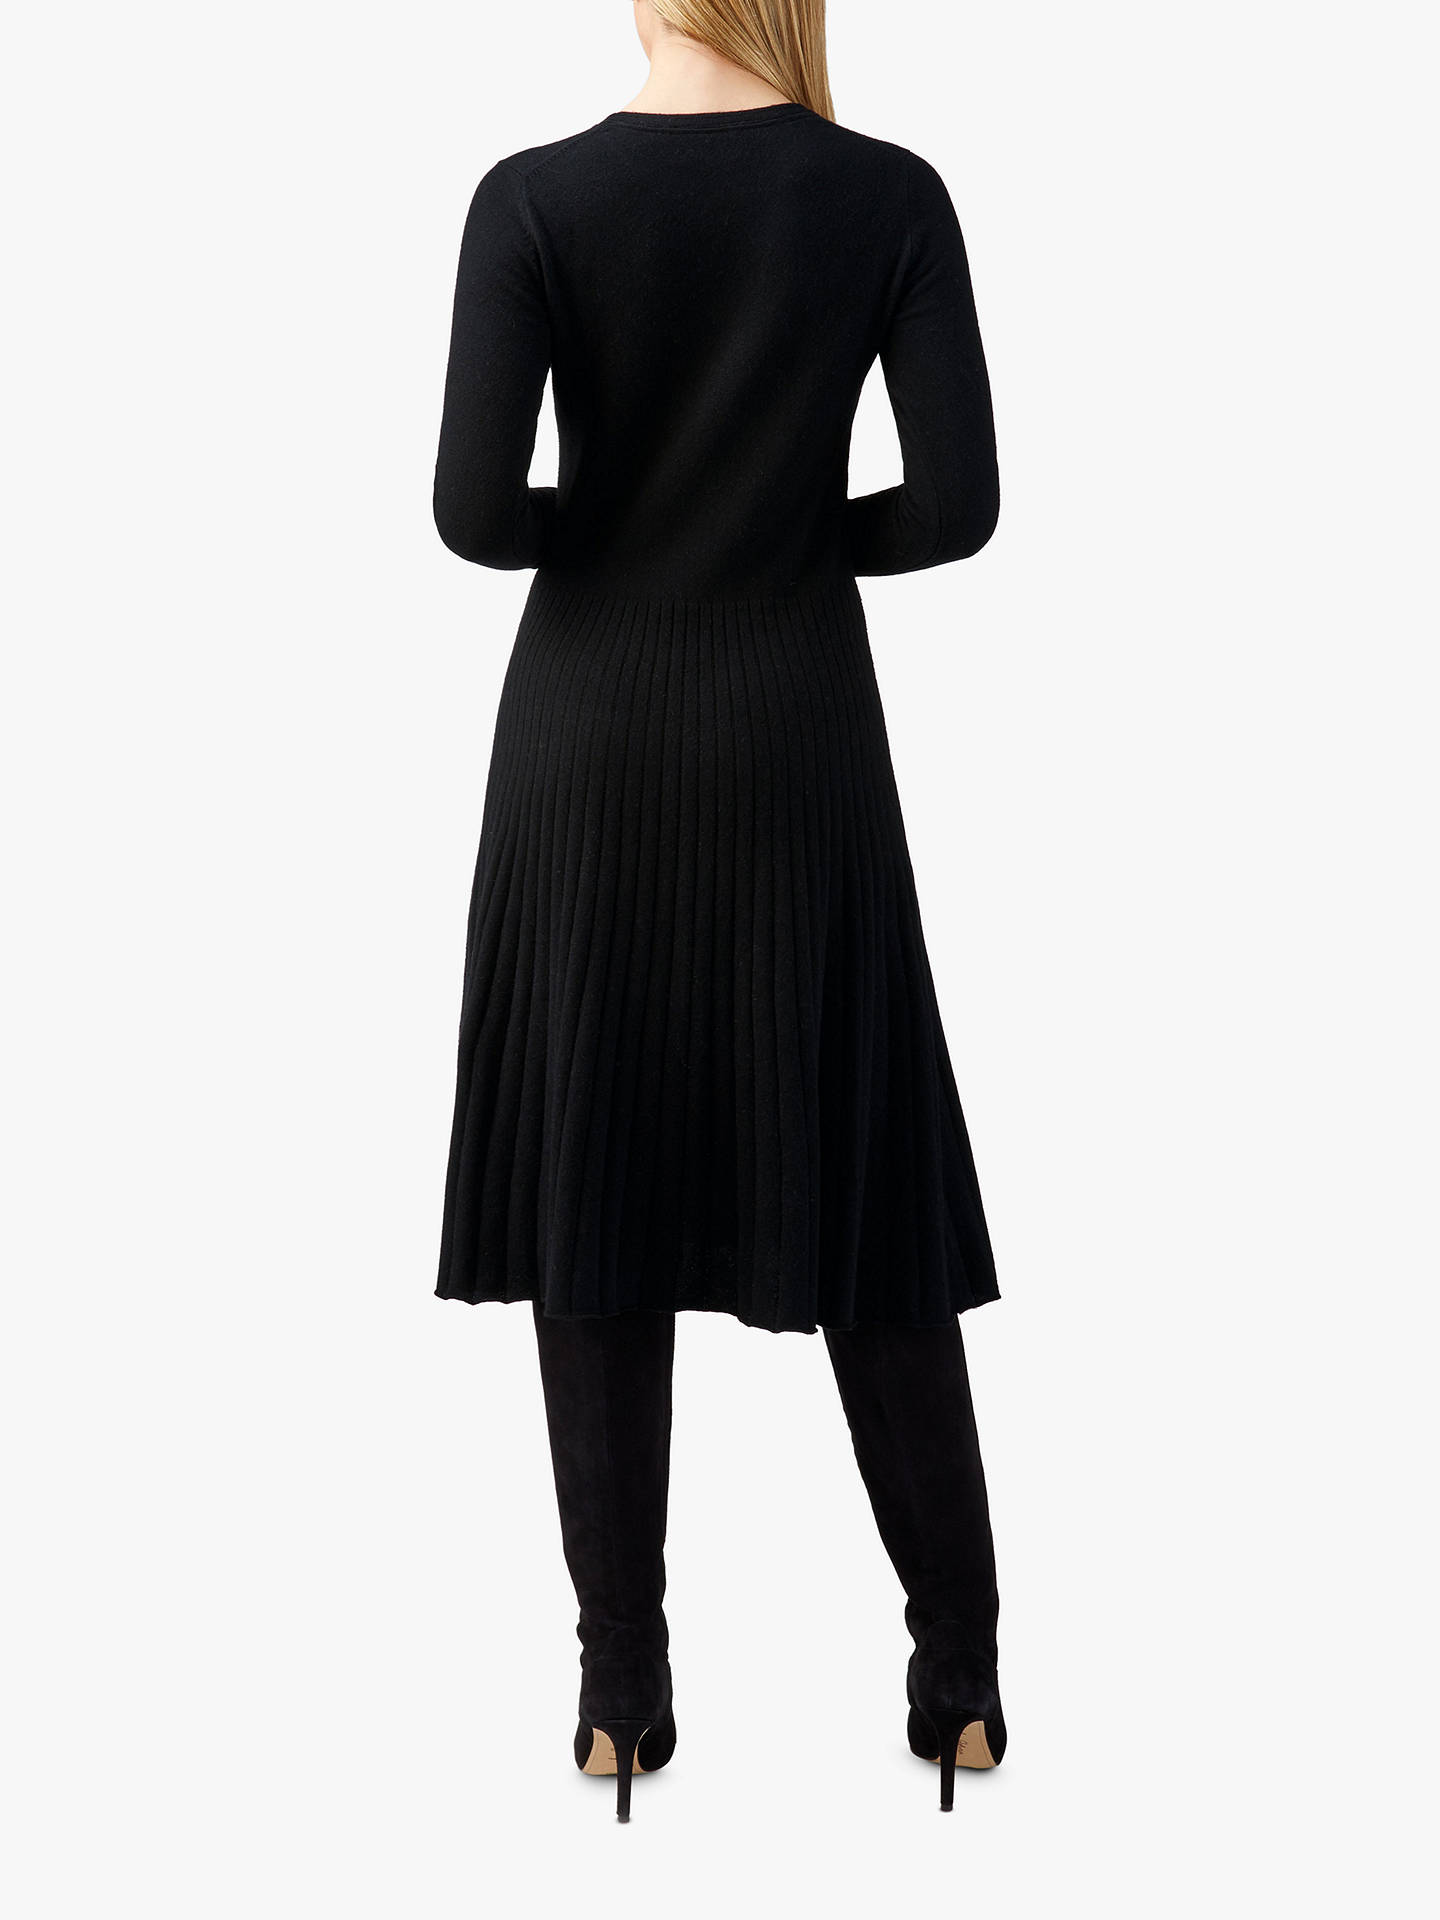 BuyPure Collection Toccato Knitted Dress, Black, 8 Online at johnlewis.com